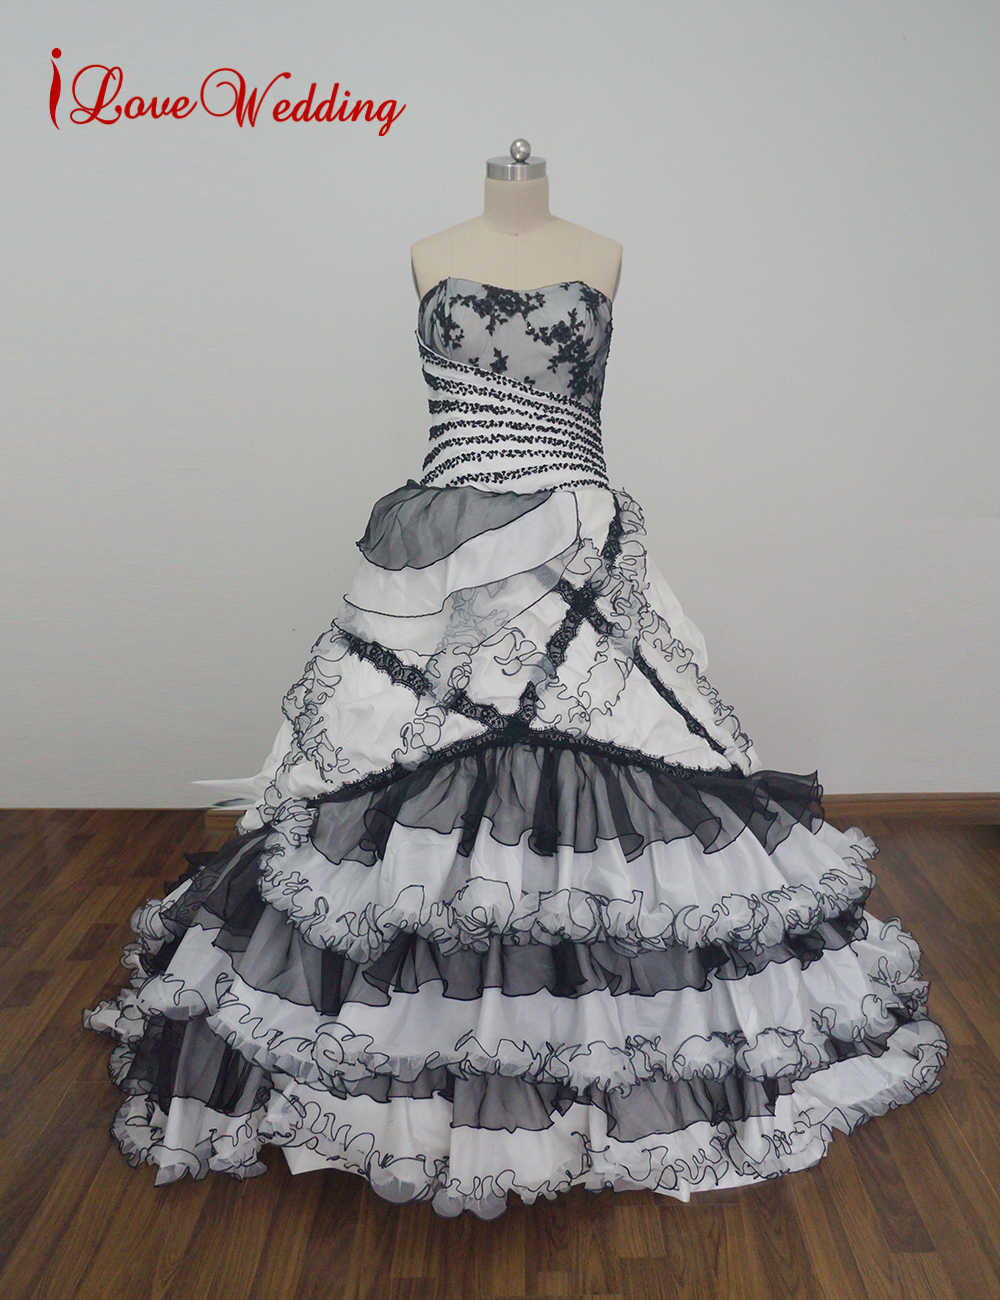 iLoveWedding New Spectacular Black and White Vintage Gothic Wedding Dresses Ball Gown Cascading Ruffles Tiered Lace Bridal Dress